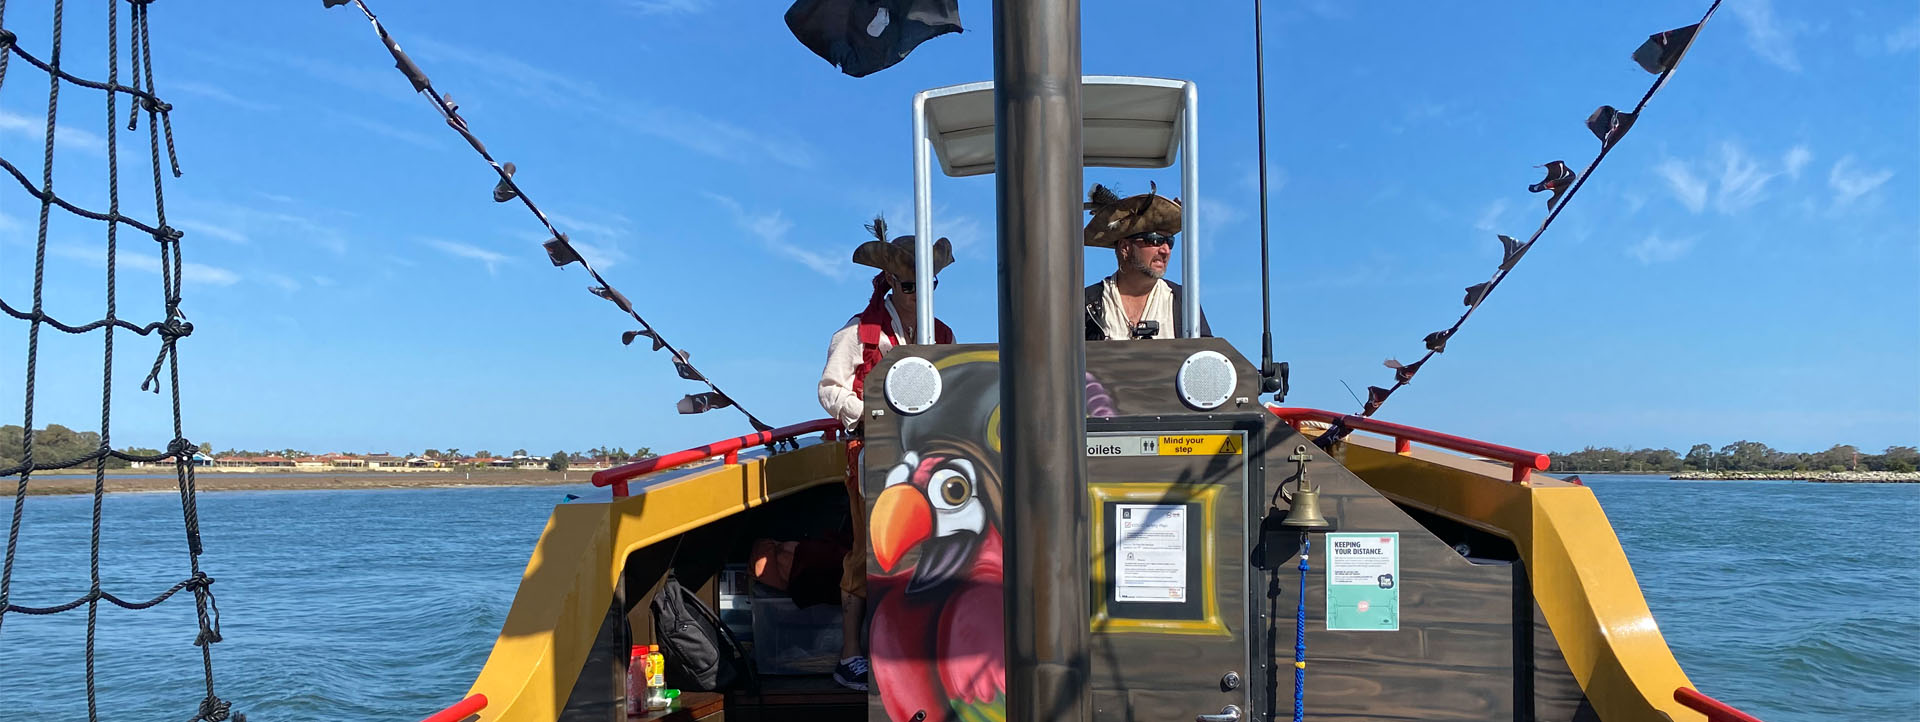 MANDURAH TOURS pirate ship slider